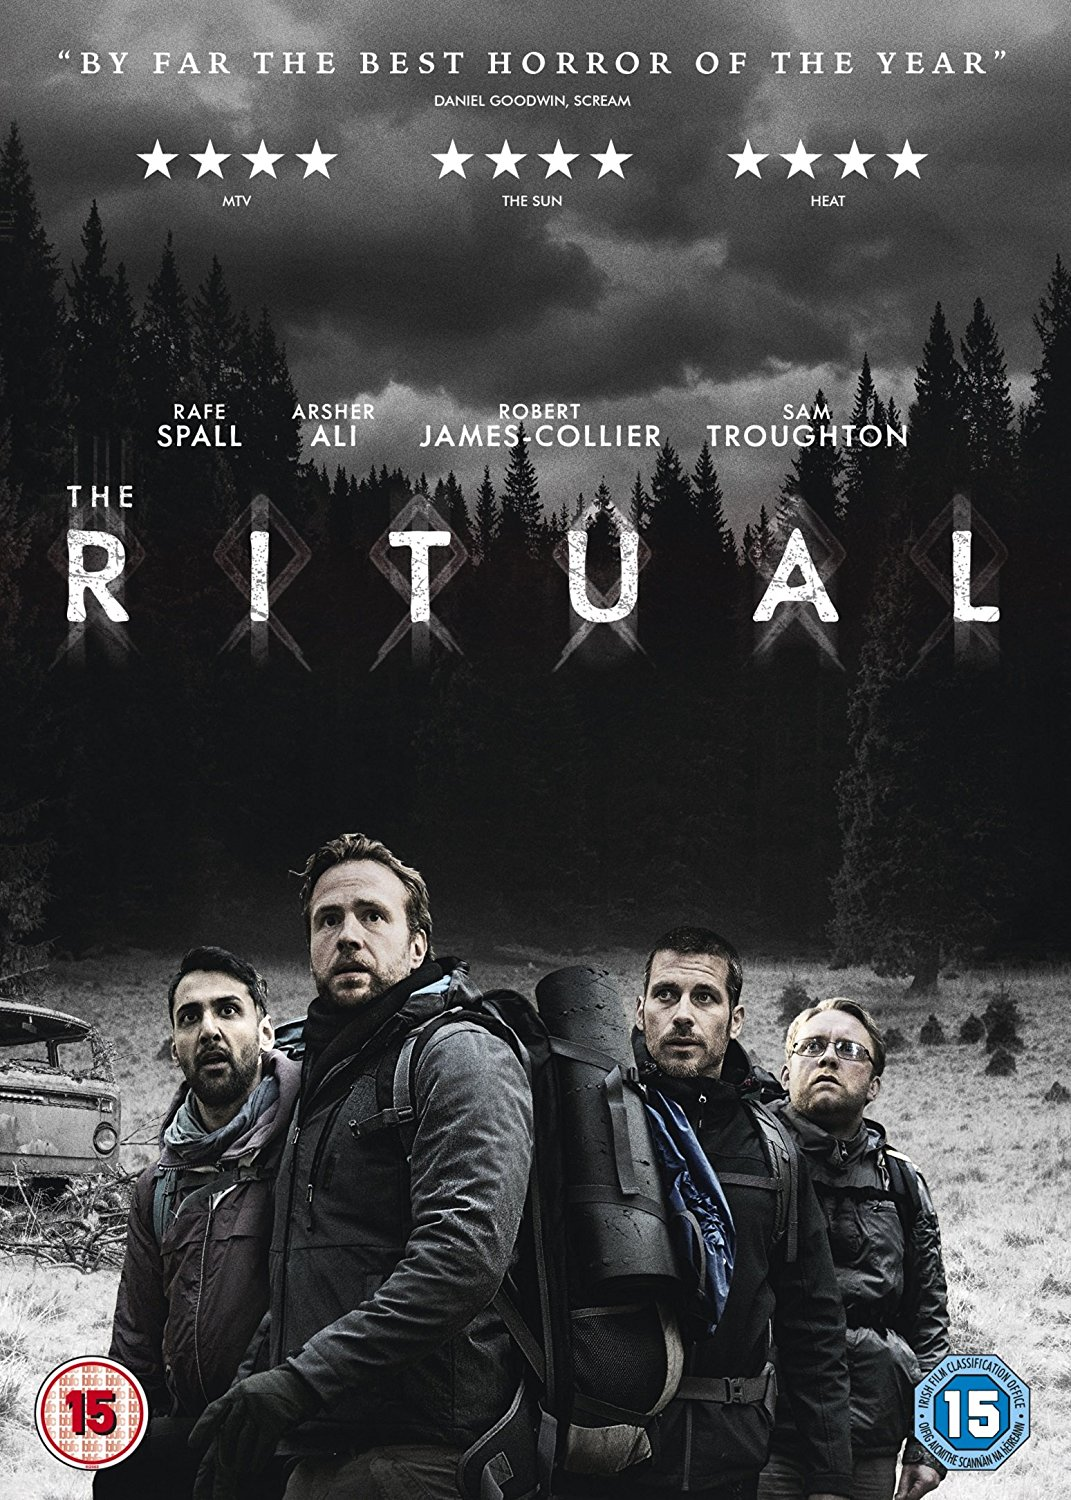 The Ritual is one of the best horrors that I've seen this year, it is a movie that really plays on your mind and senses to shock you, the movie is available on Digital Download now and DVD from 12th February 2018.